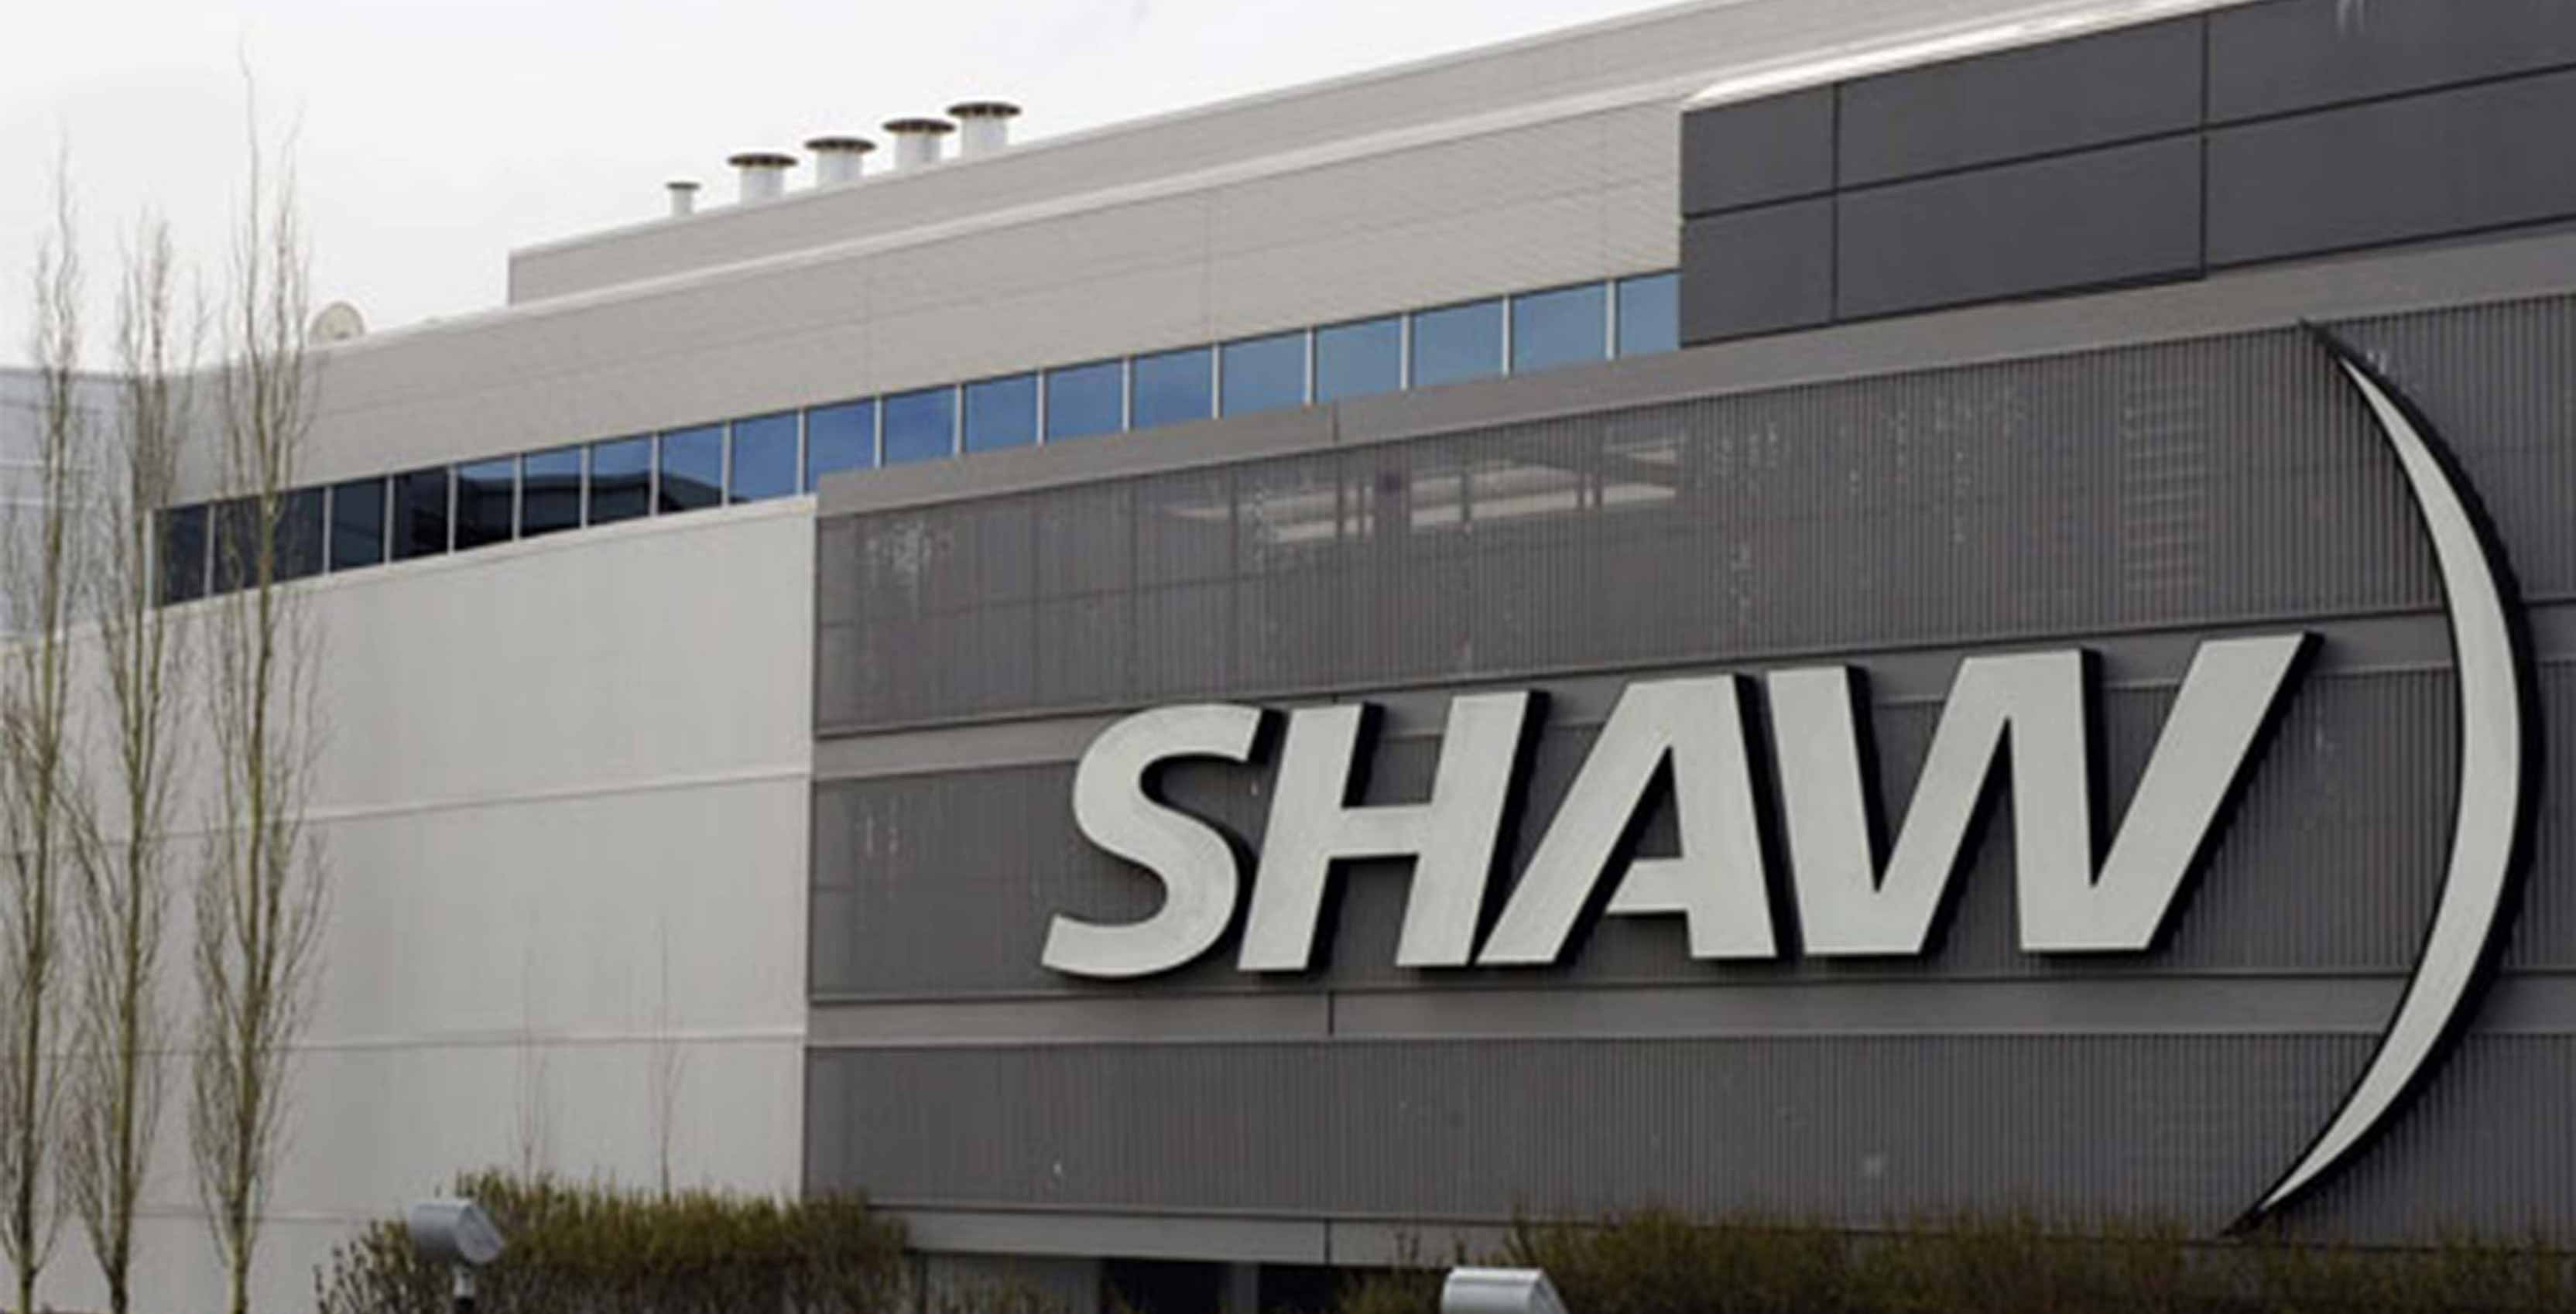 Shaw logo on building